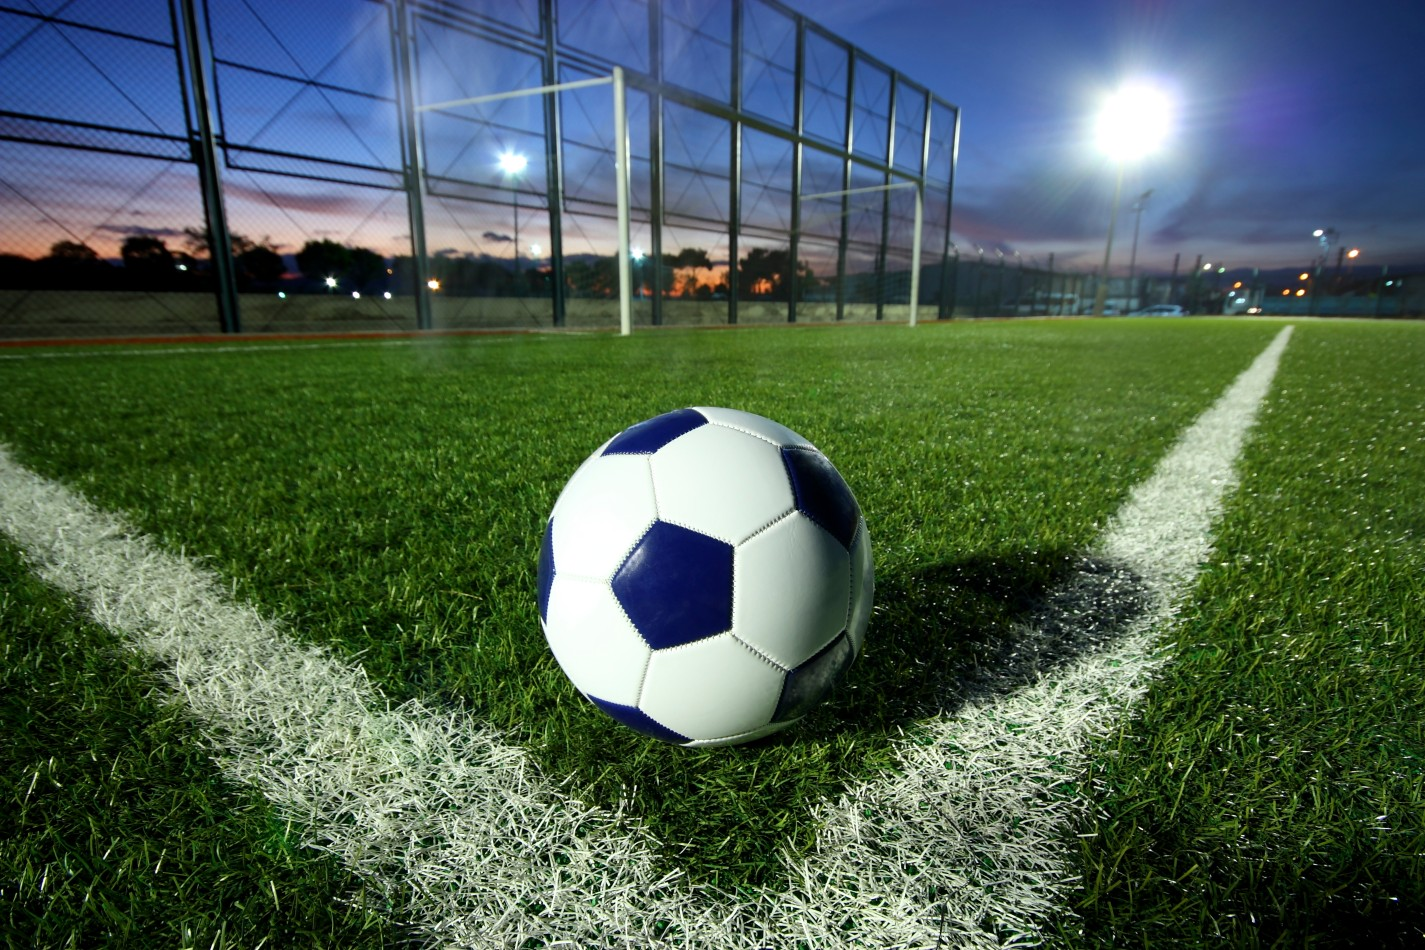 ETC Sports Surfaces specialise in designing, installing and maintaining 3G football pitches for UK public and private clients